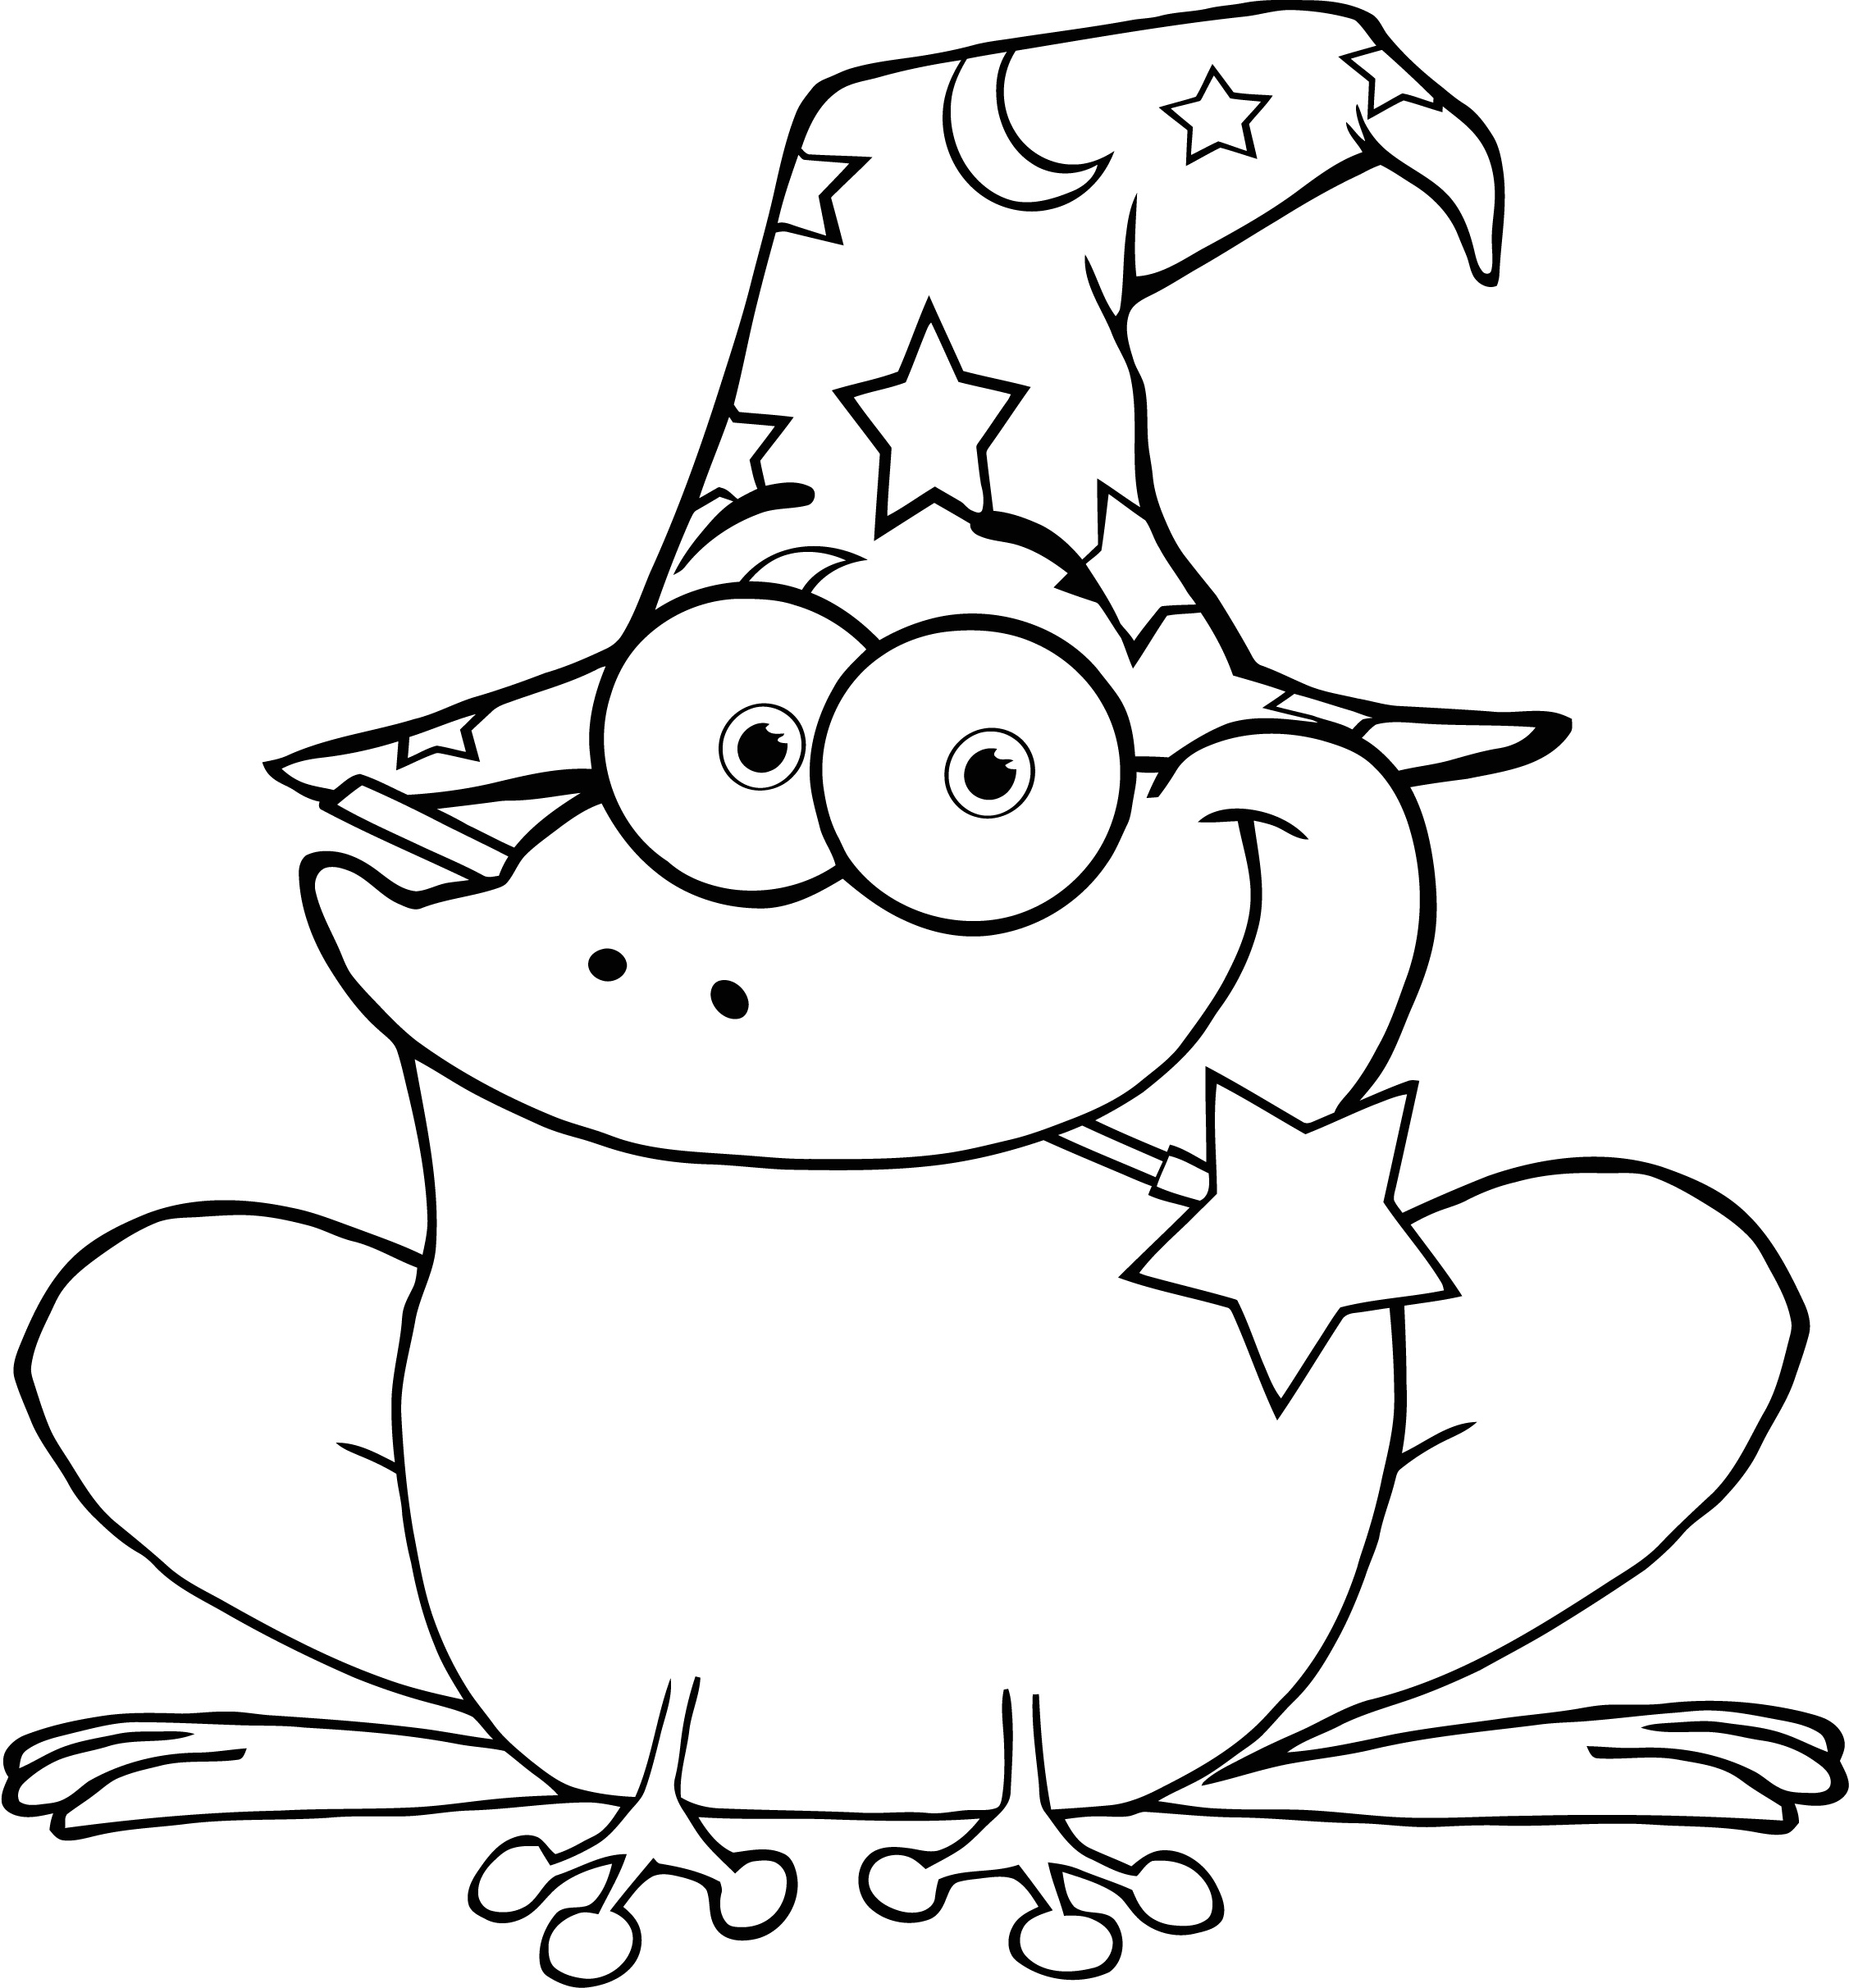 2254x2424 Colour Page Of Wizard Frog With A Magic Wand In Mouth